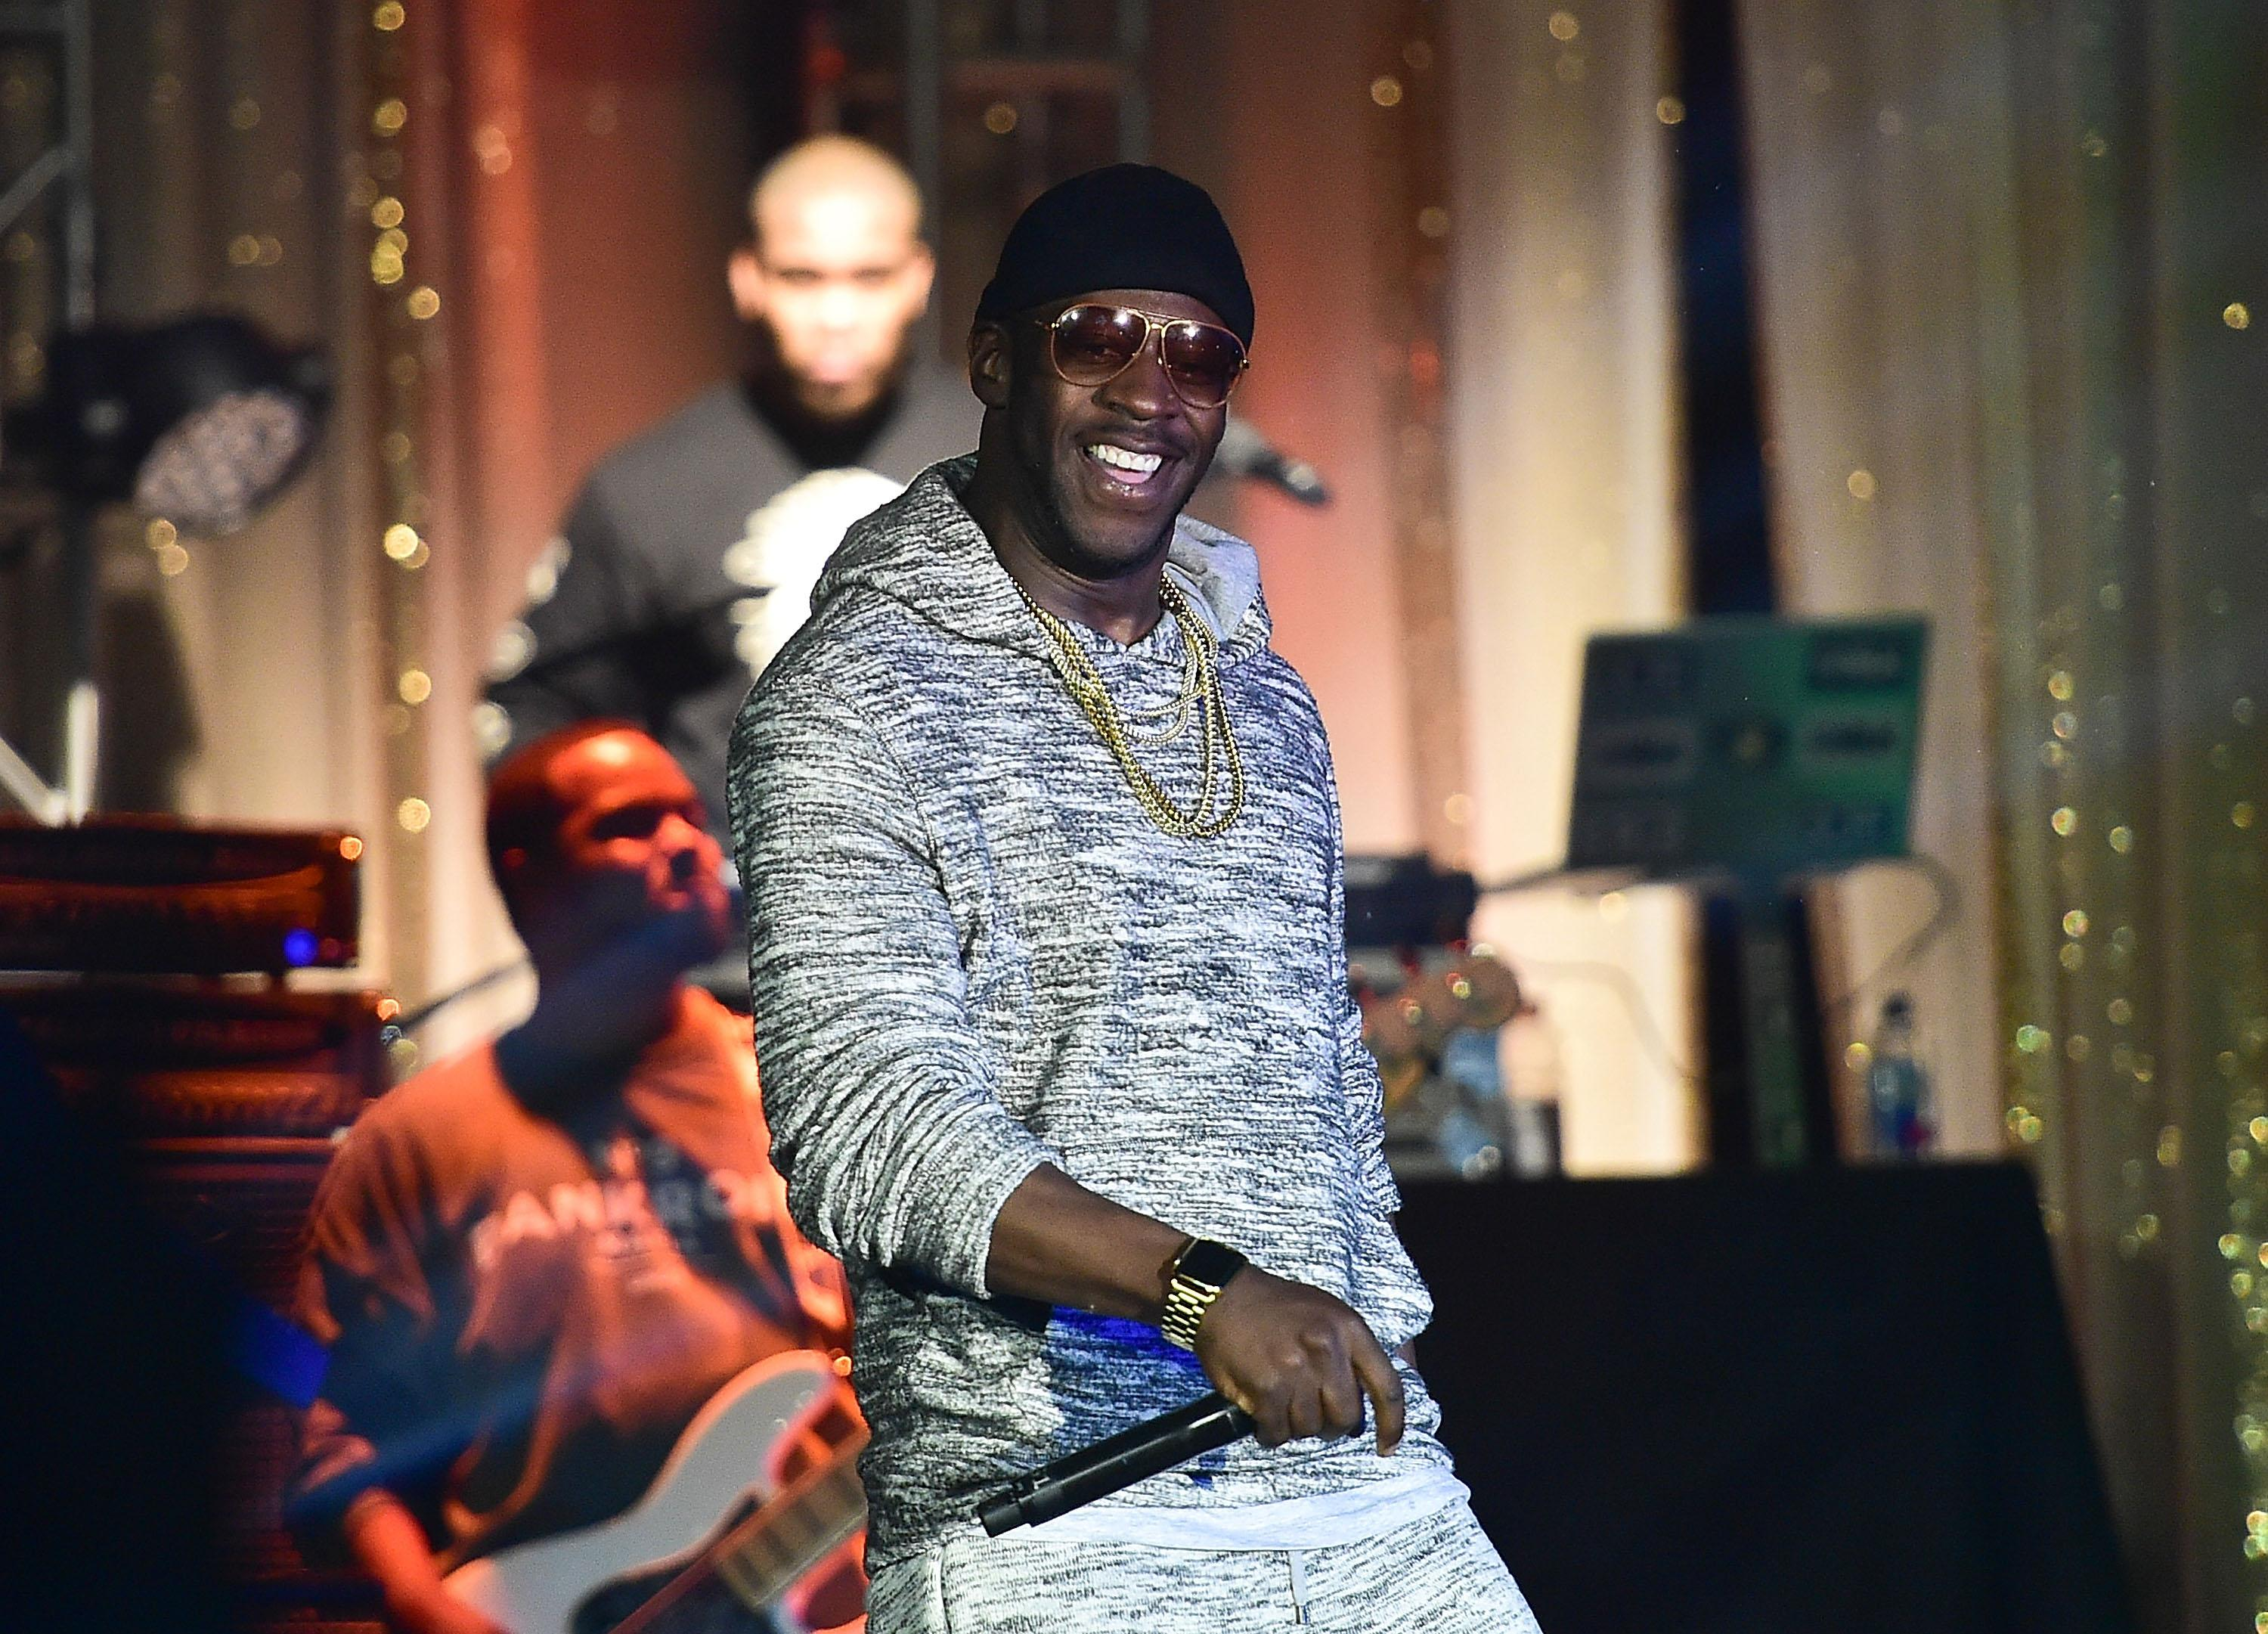 What Is A Romphim Twitter Roasts Rapper Young Dro For Wearing Male Romper